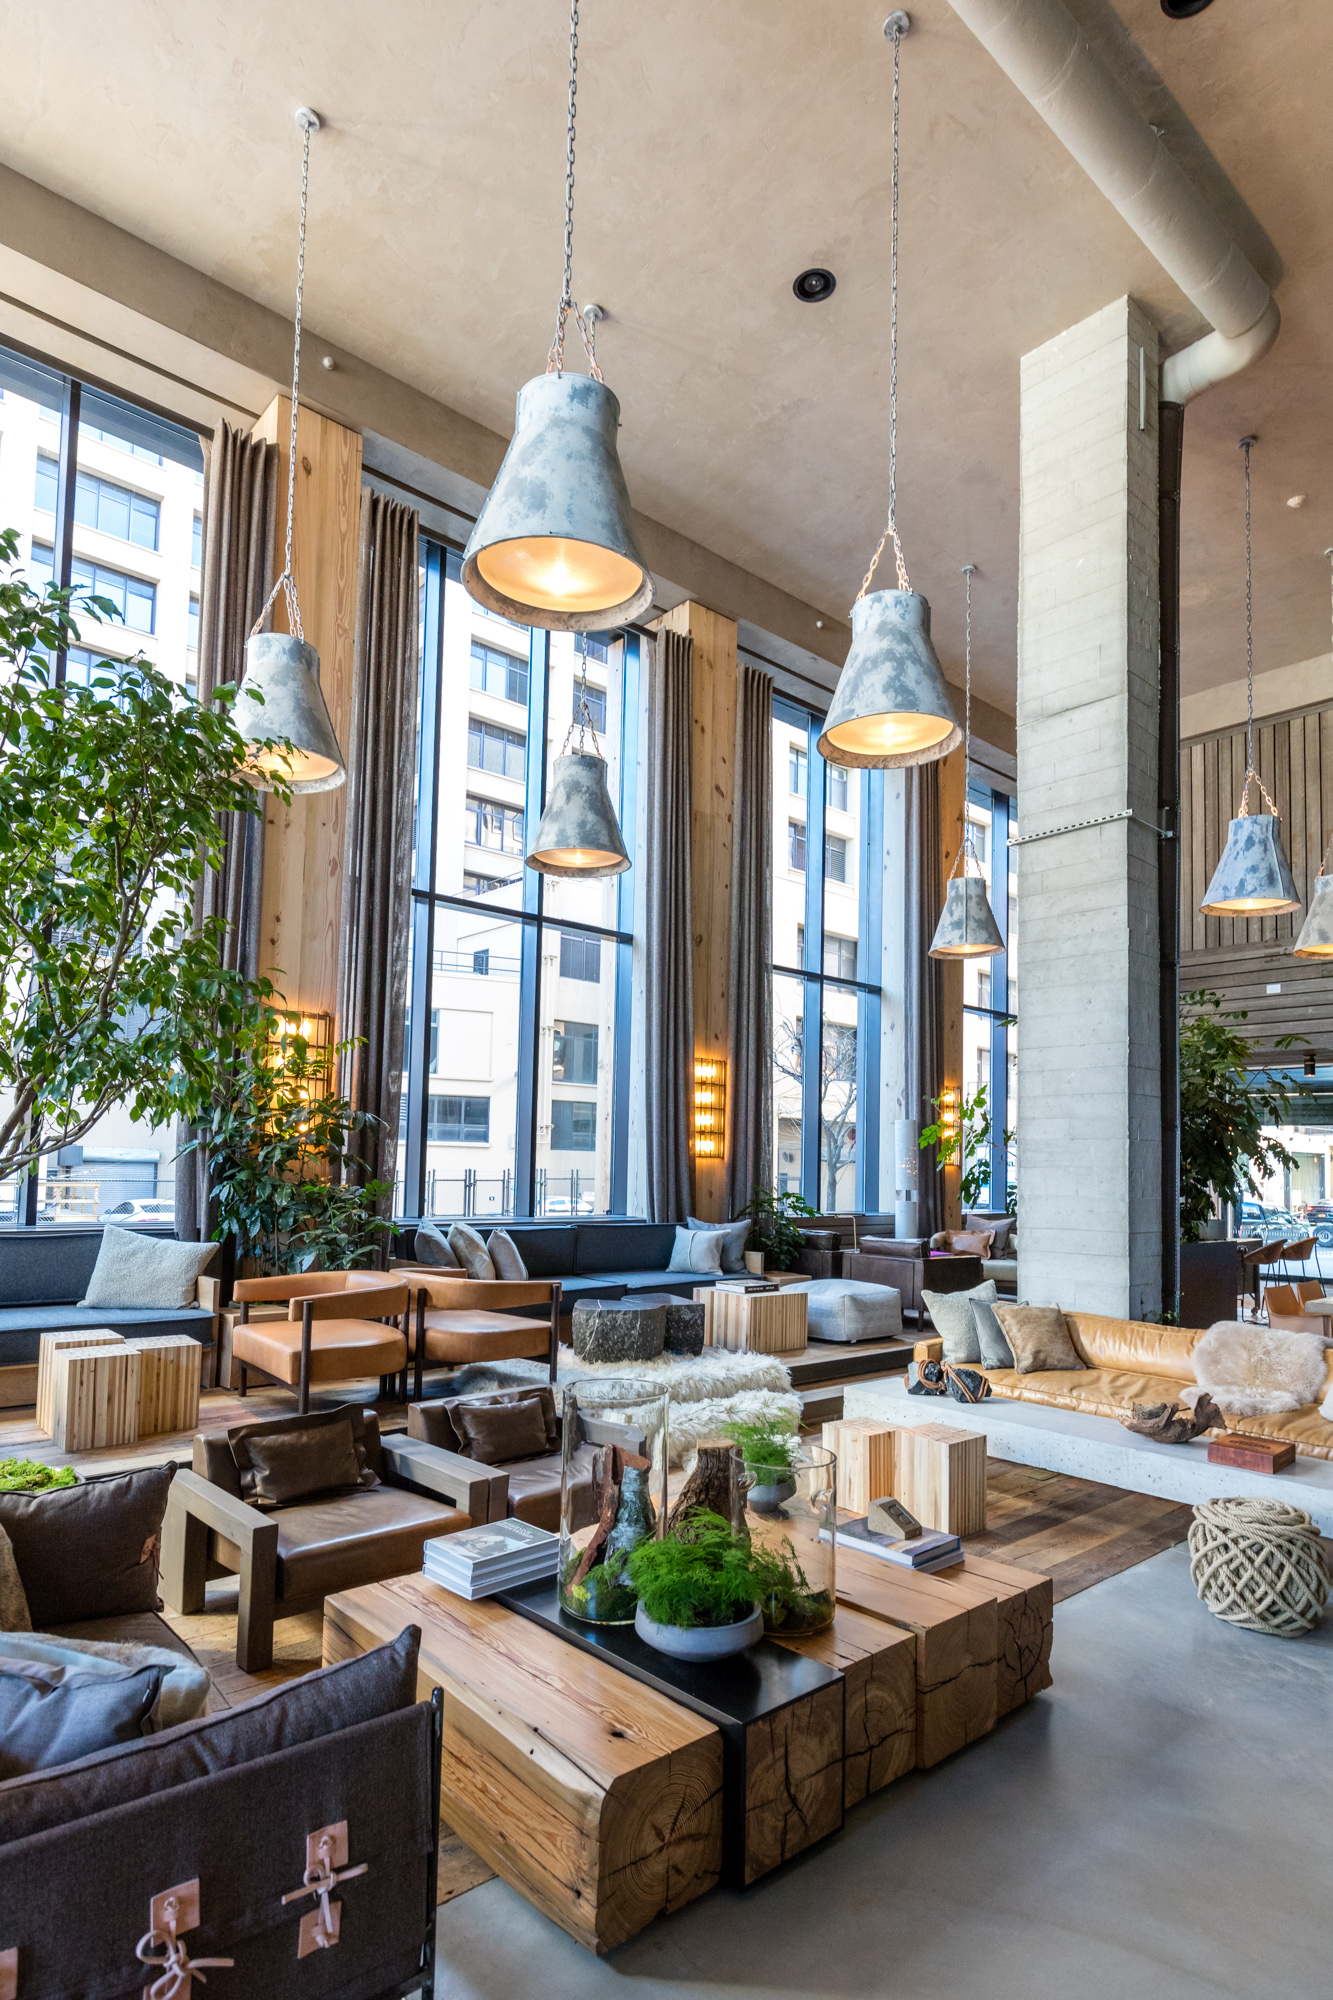 tour 1 hotels' new sustainable nyc hotel in brooklyn bridge park